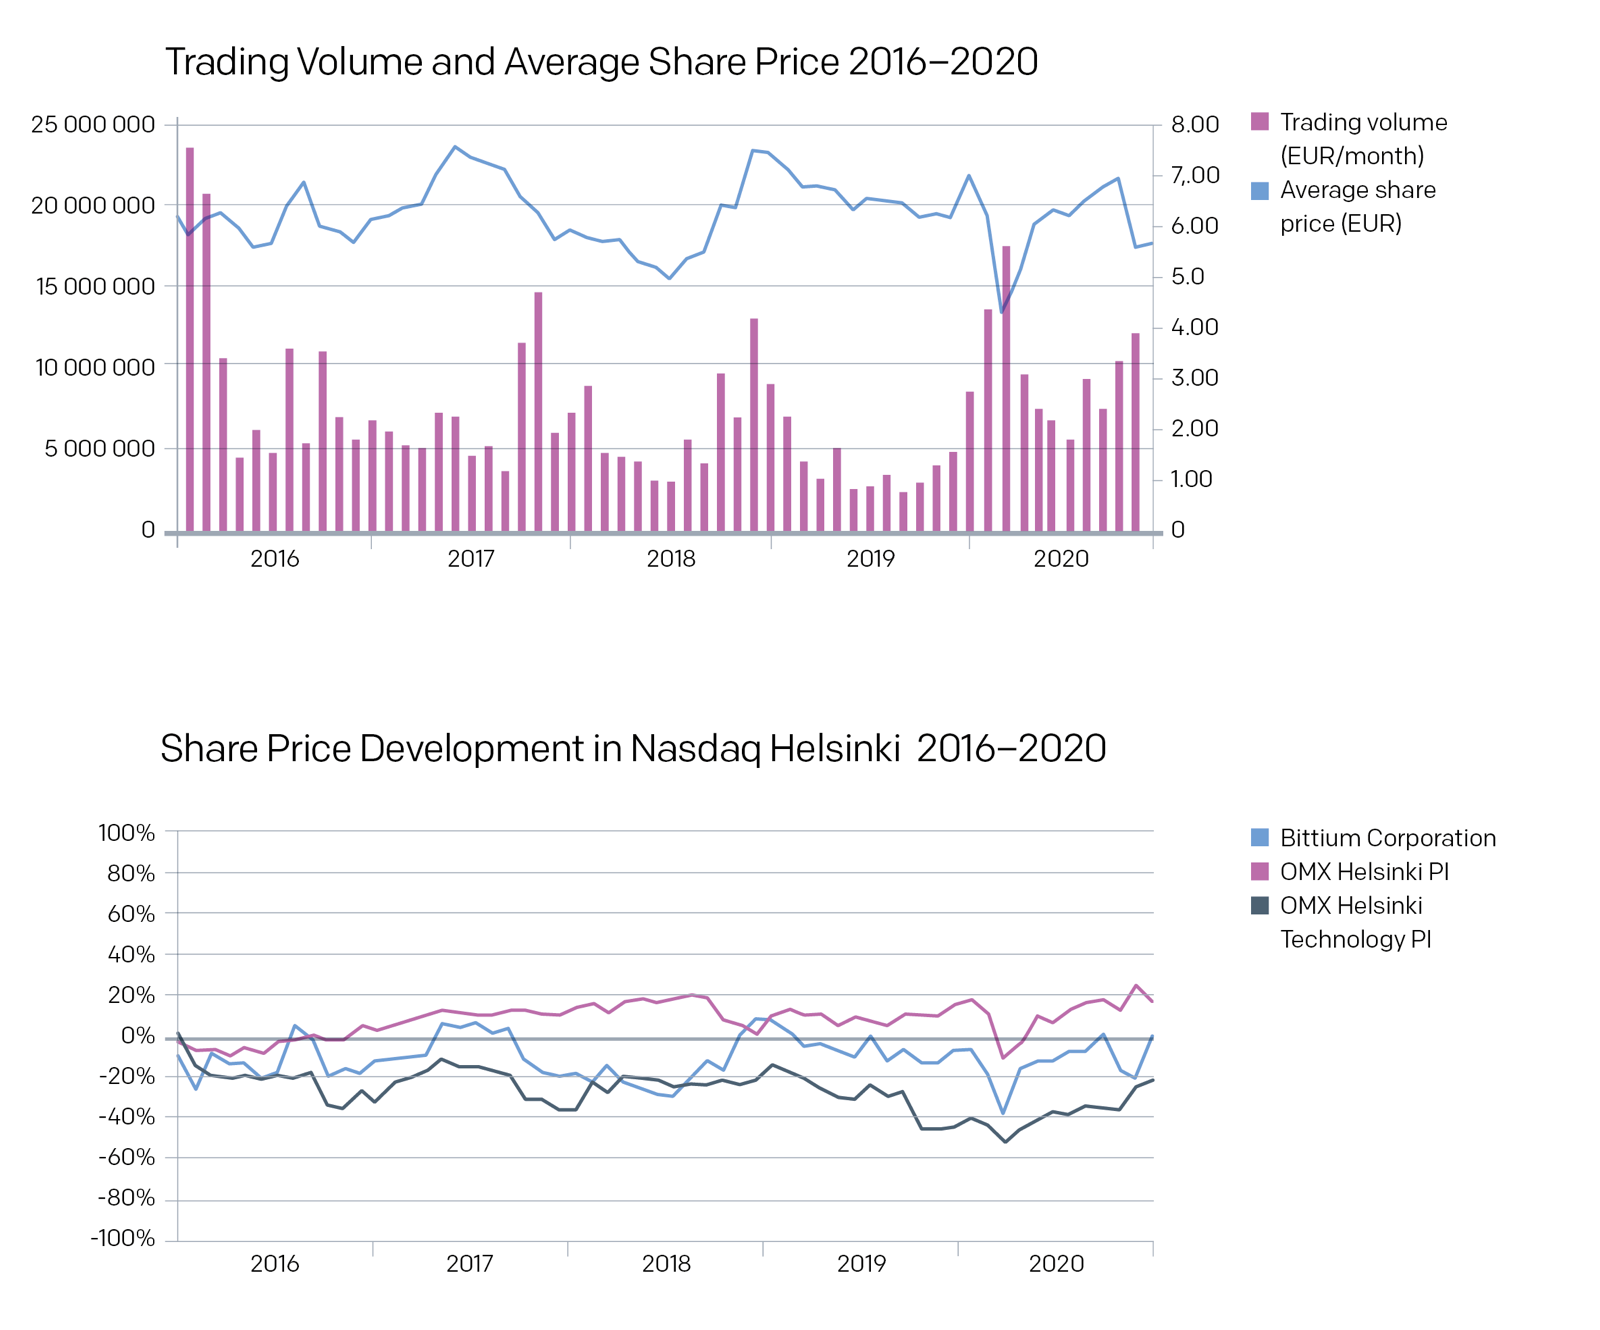 Trading volume and average share price 2020